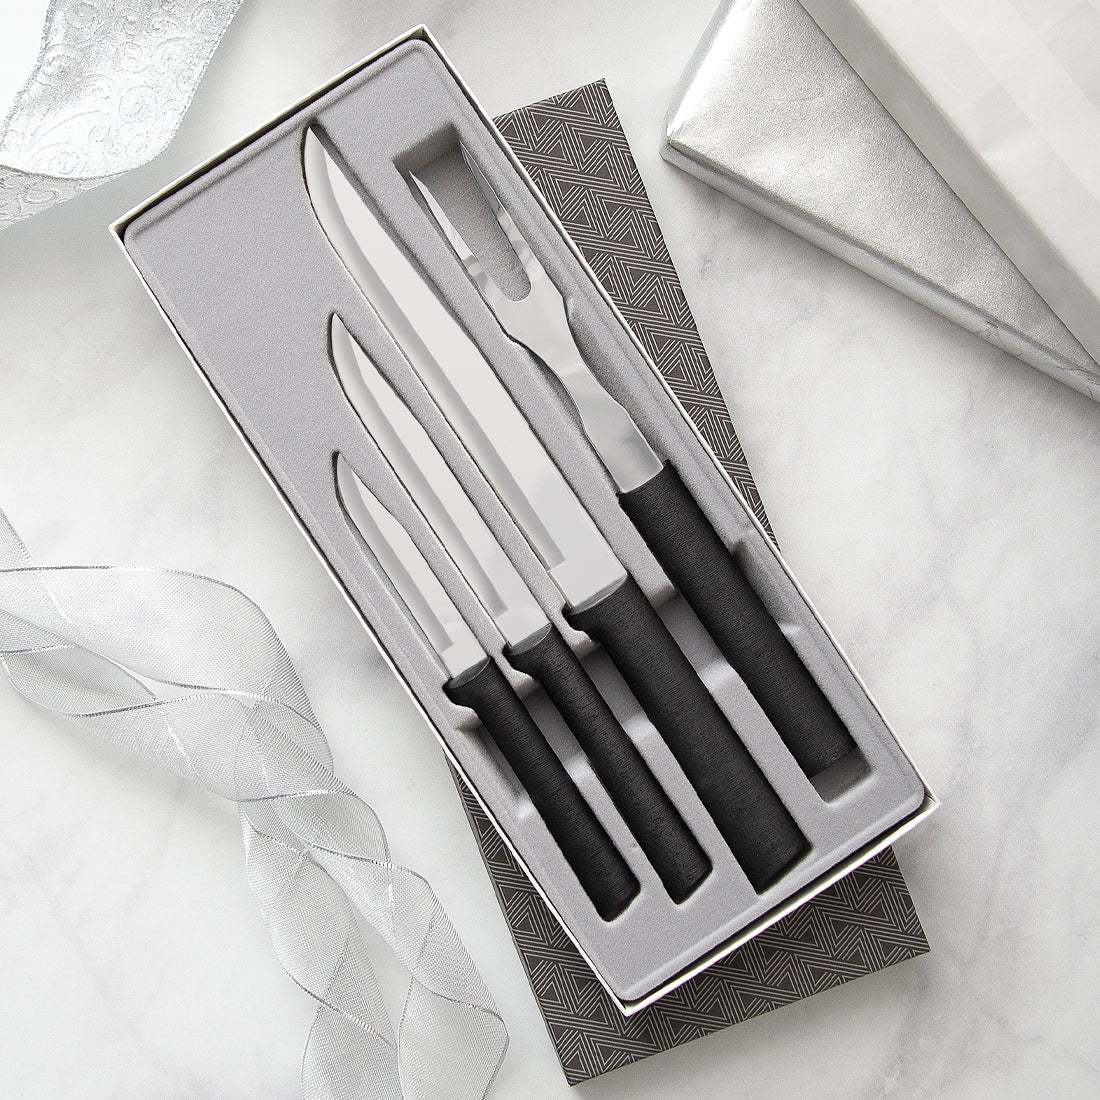 Rada Cutlery Prepare Then Carve Gift Set with black handles.